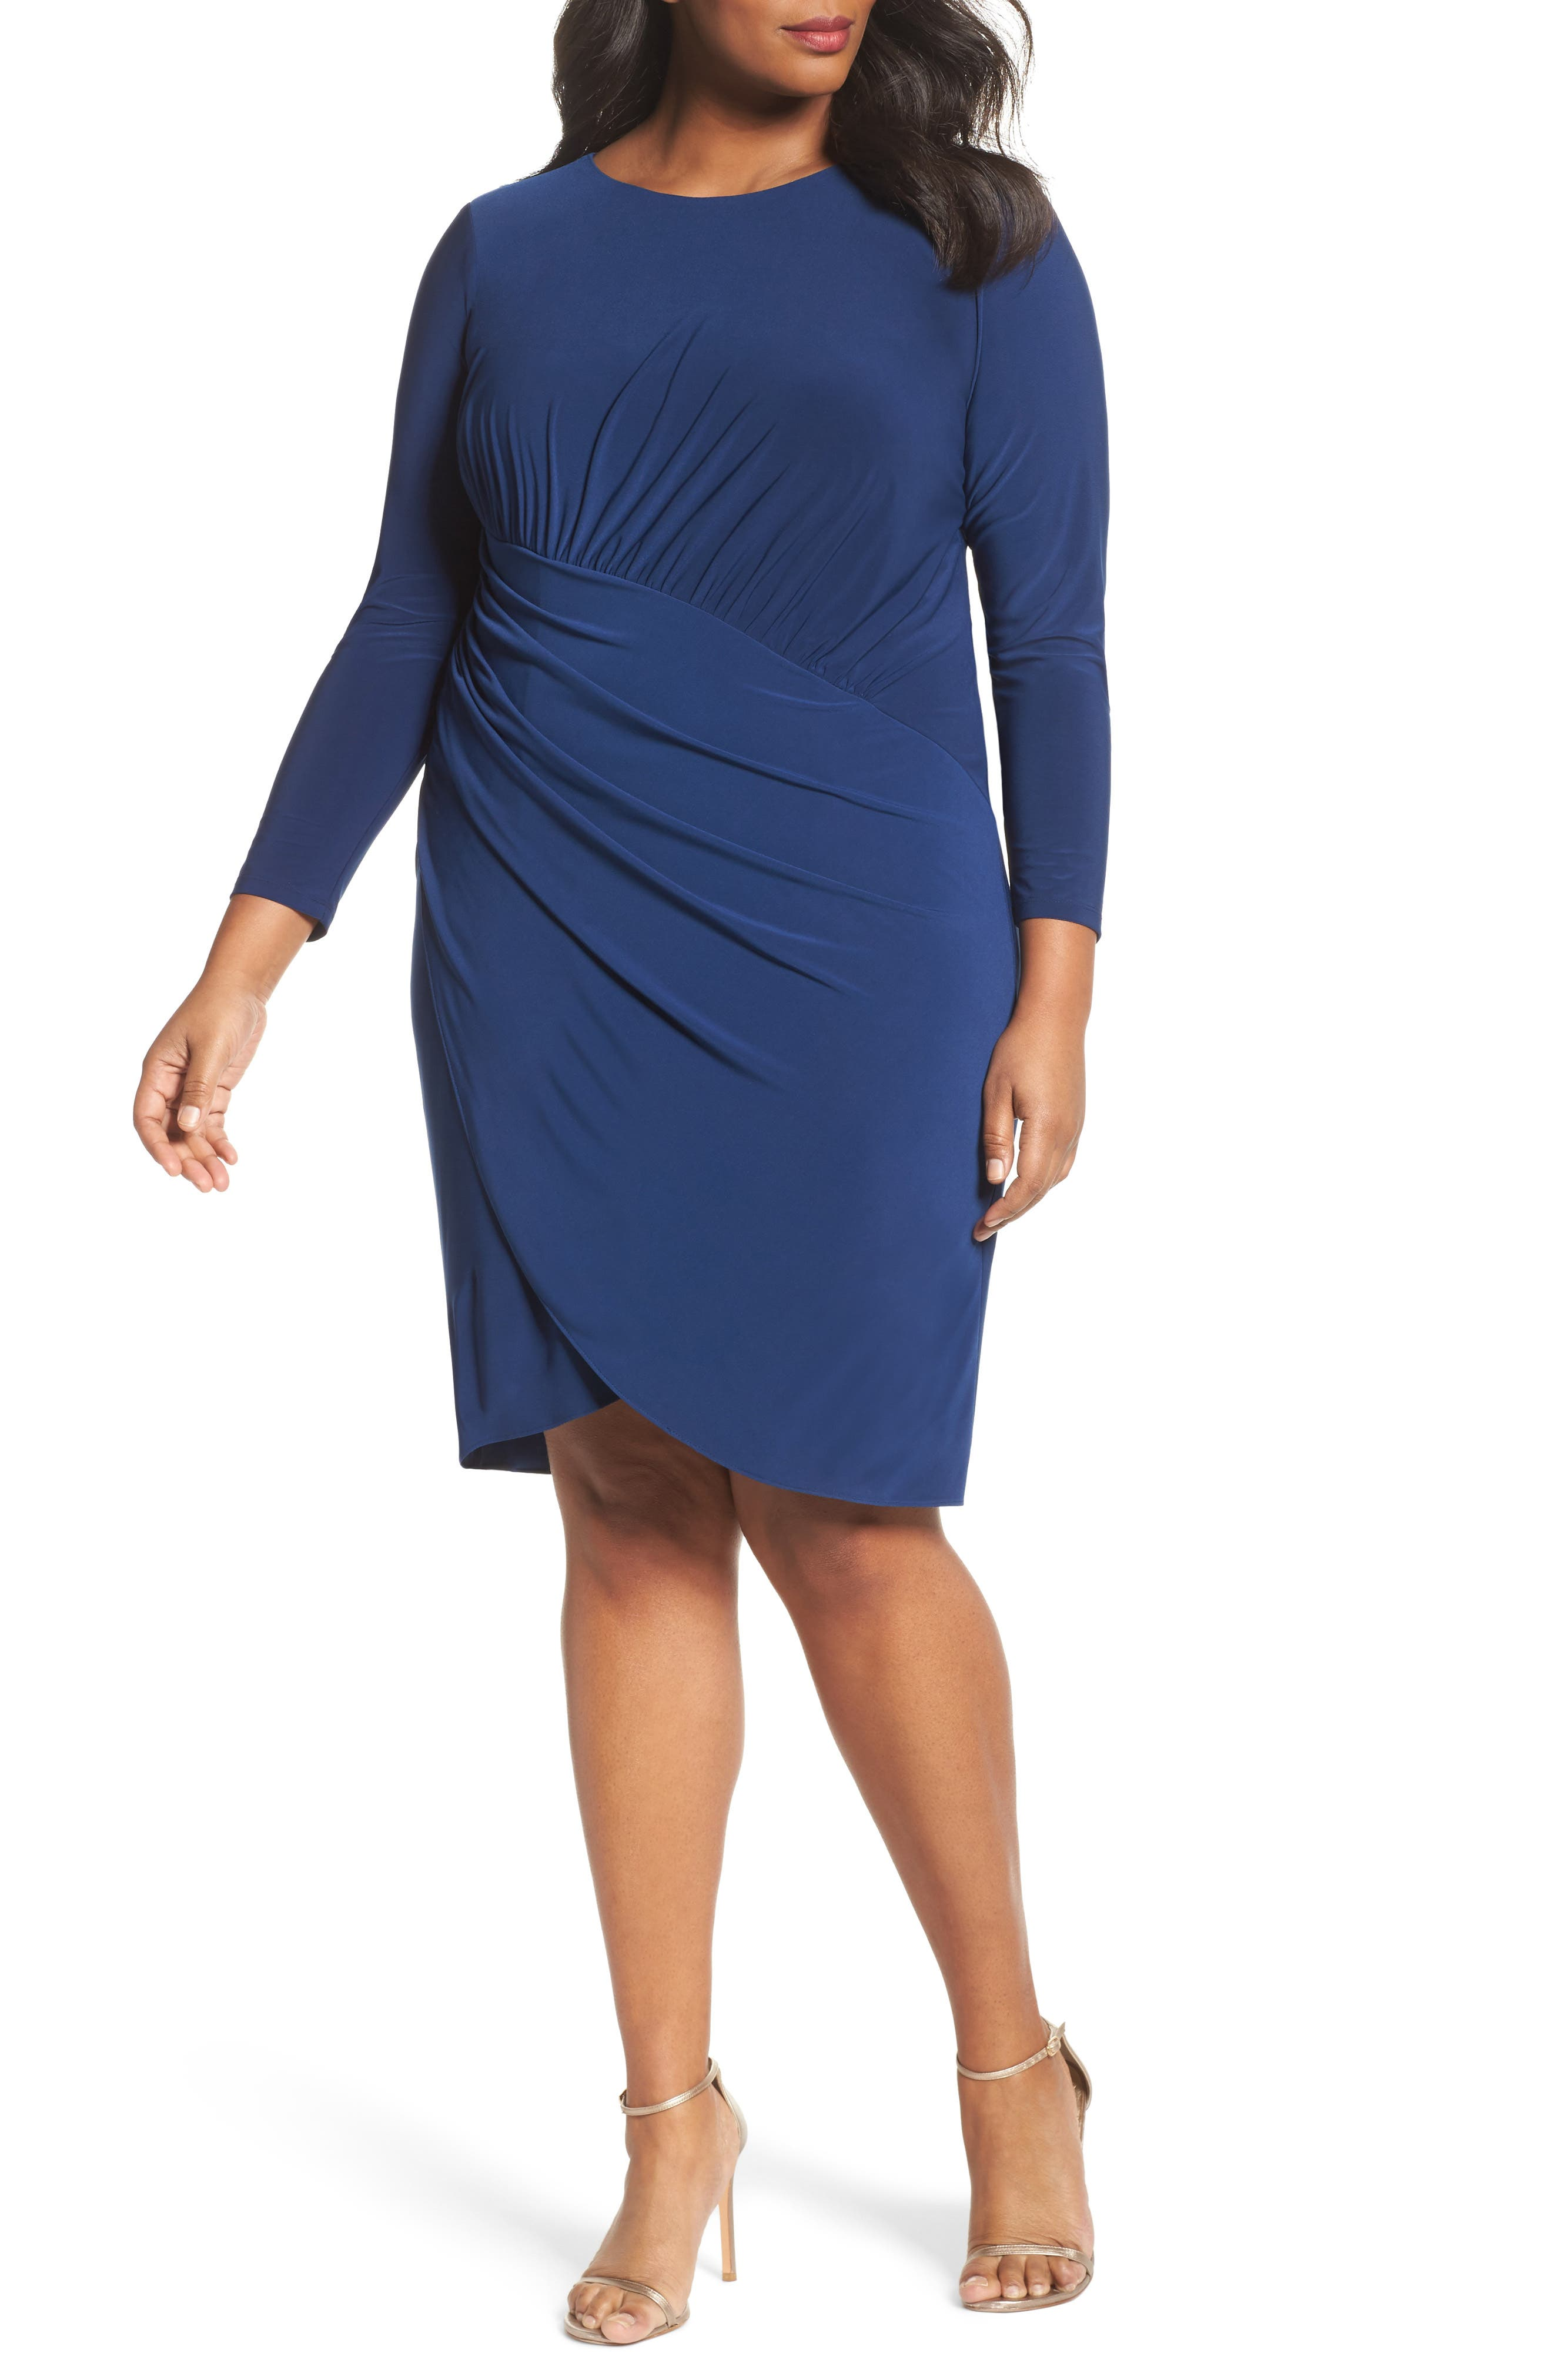 Adrianna Papell Faux Wrap Jersey Dress (Plus Size)